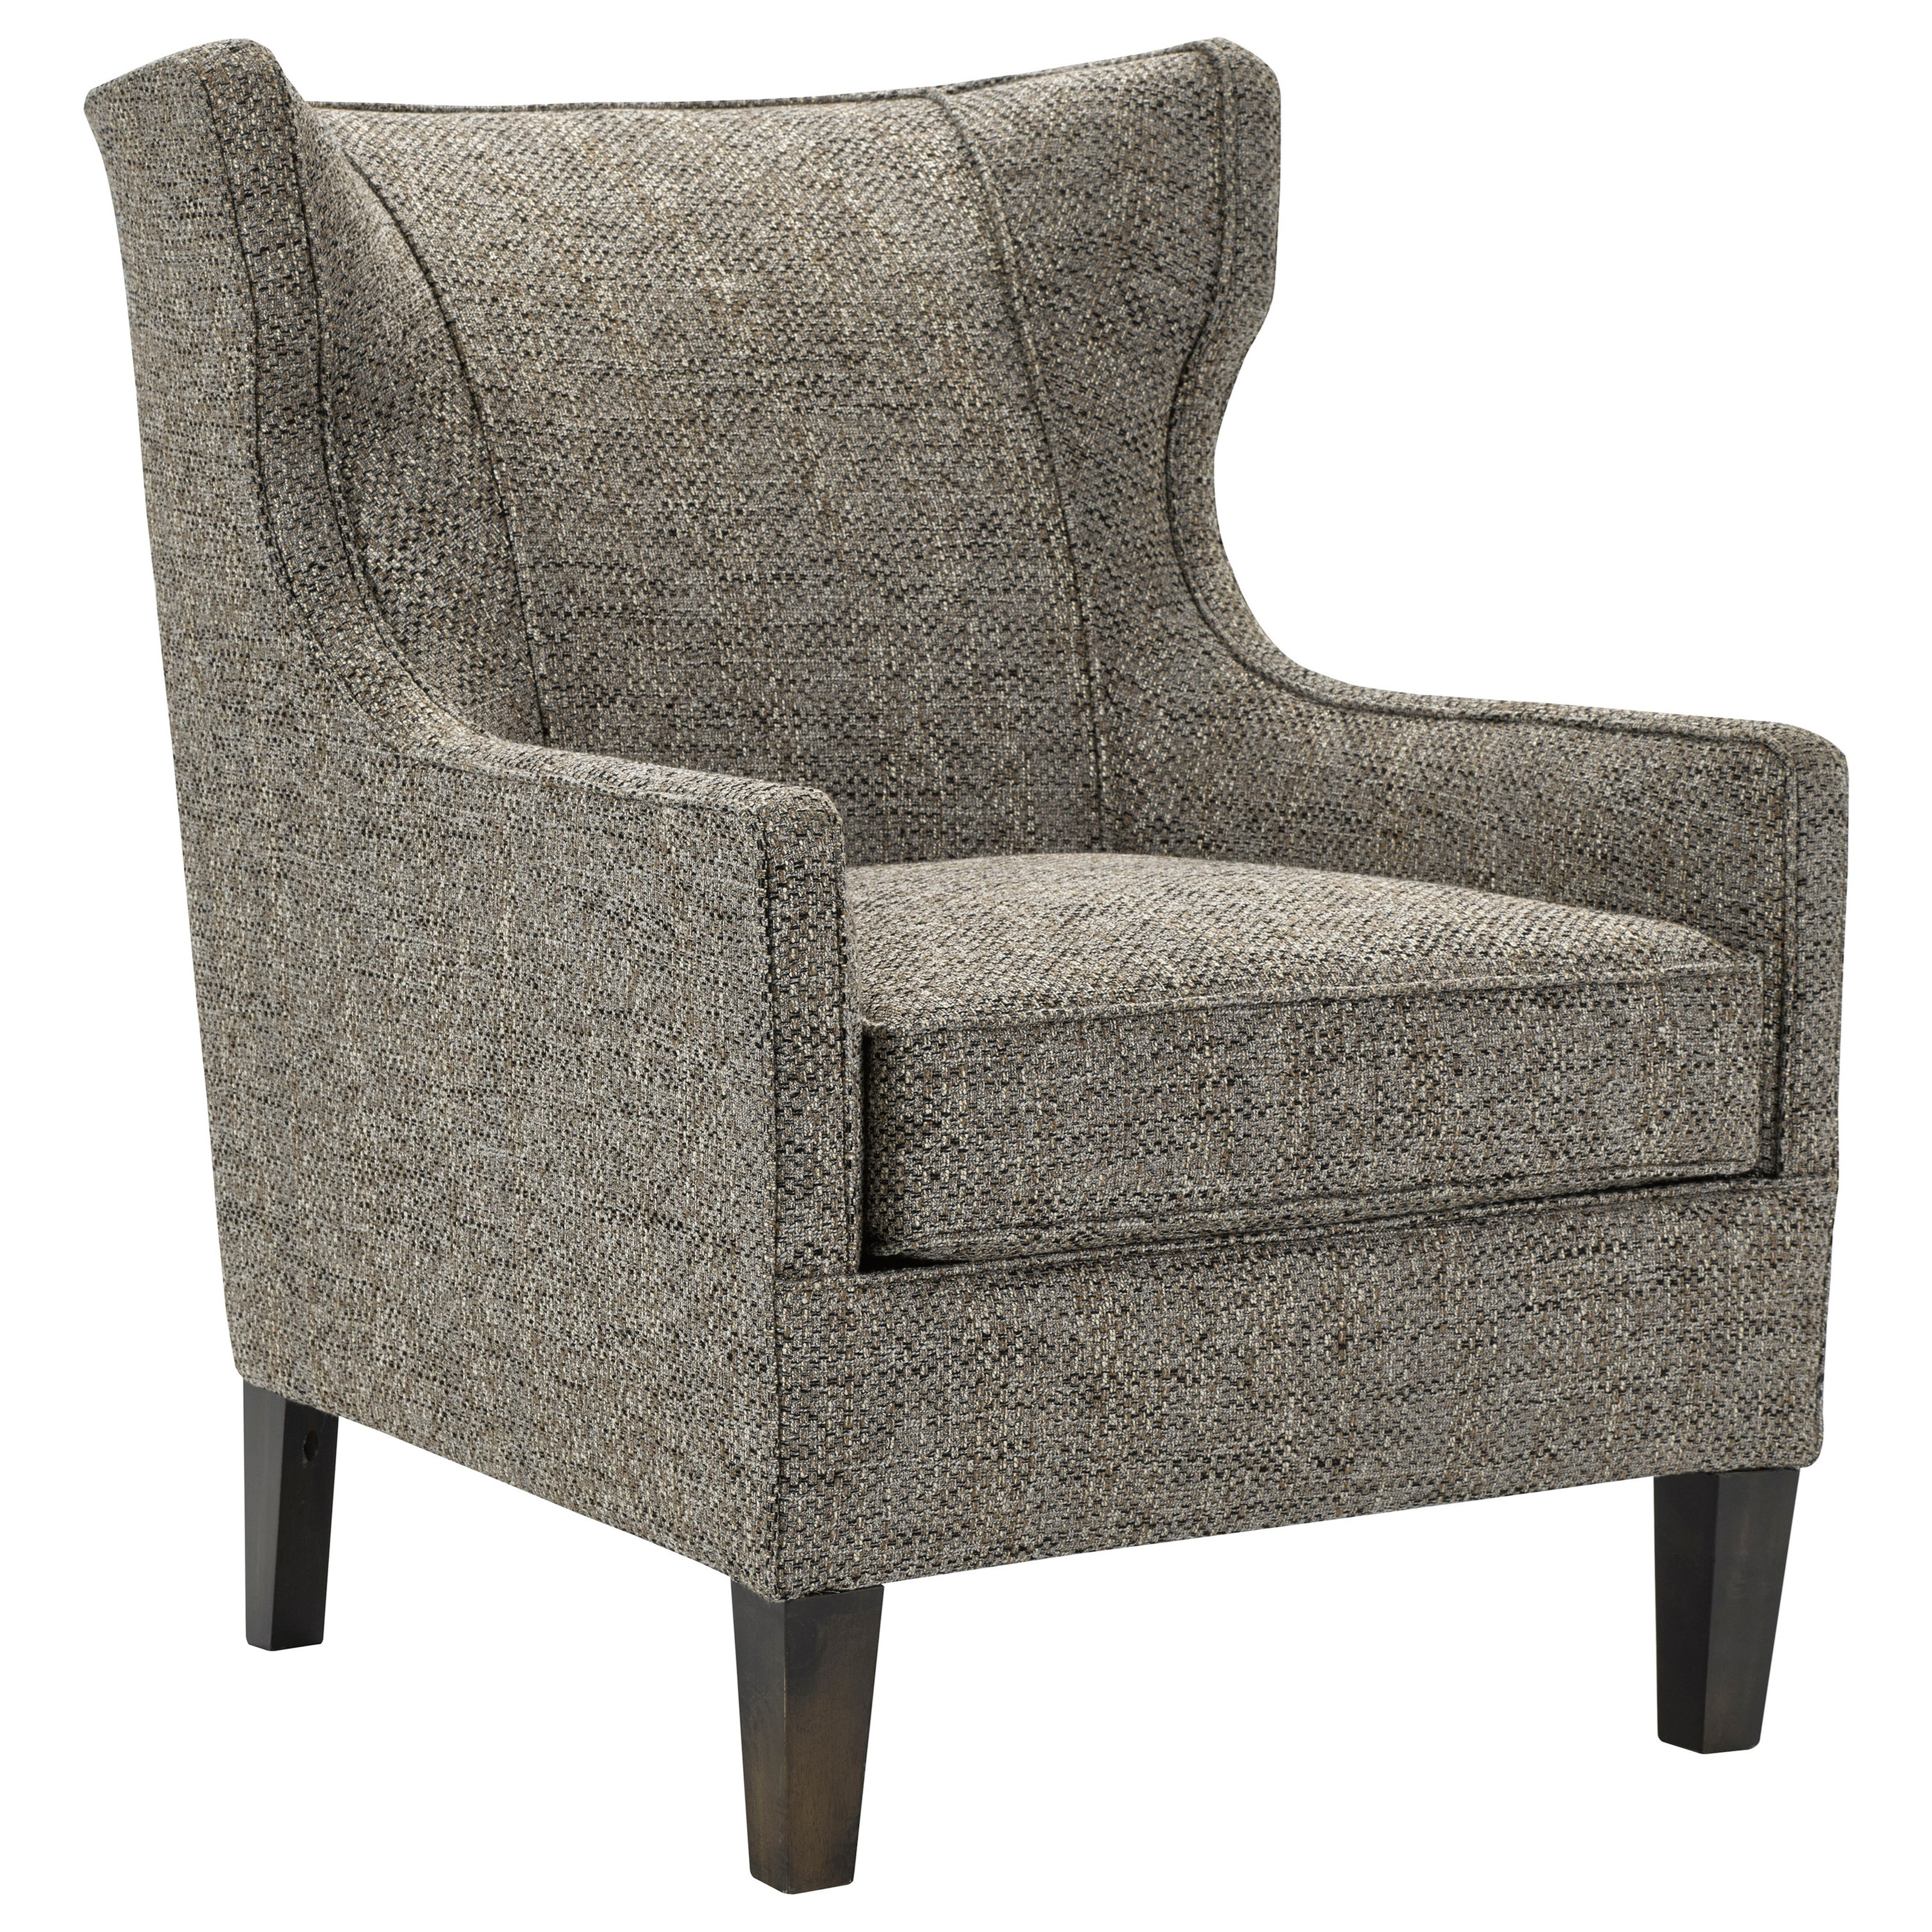 Broyhill Furniture Able Wing Chair - Item Number: 9033-0-4857-97